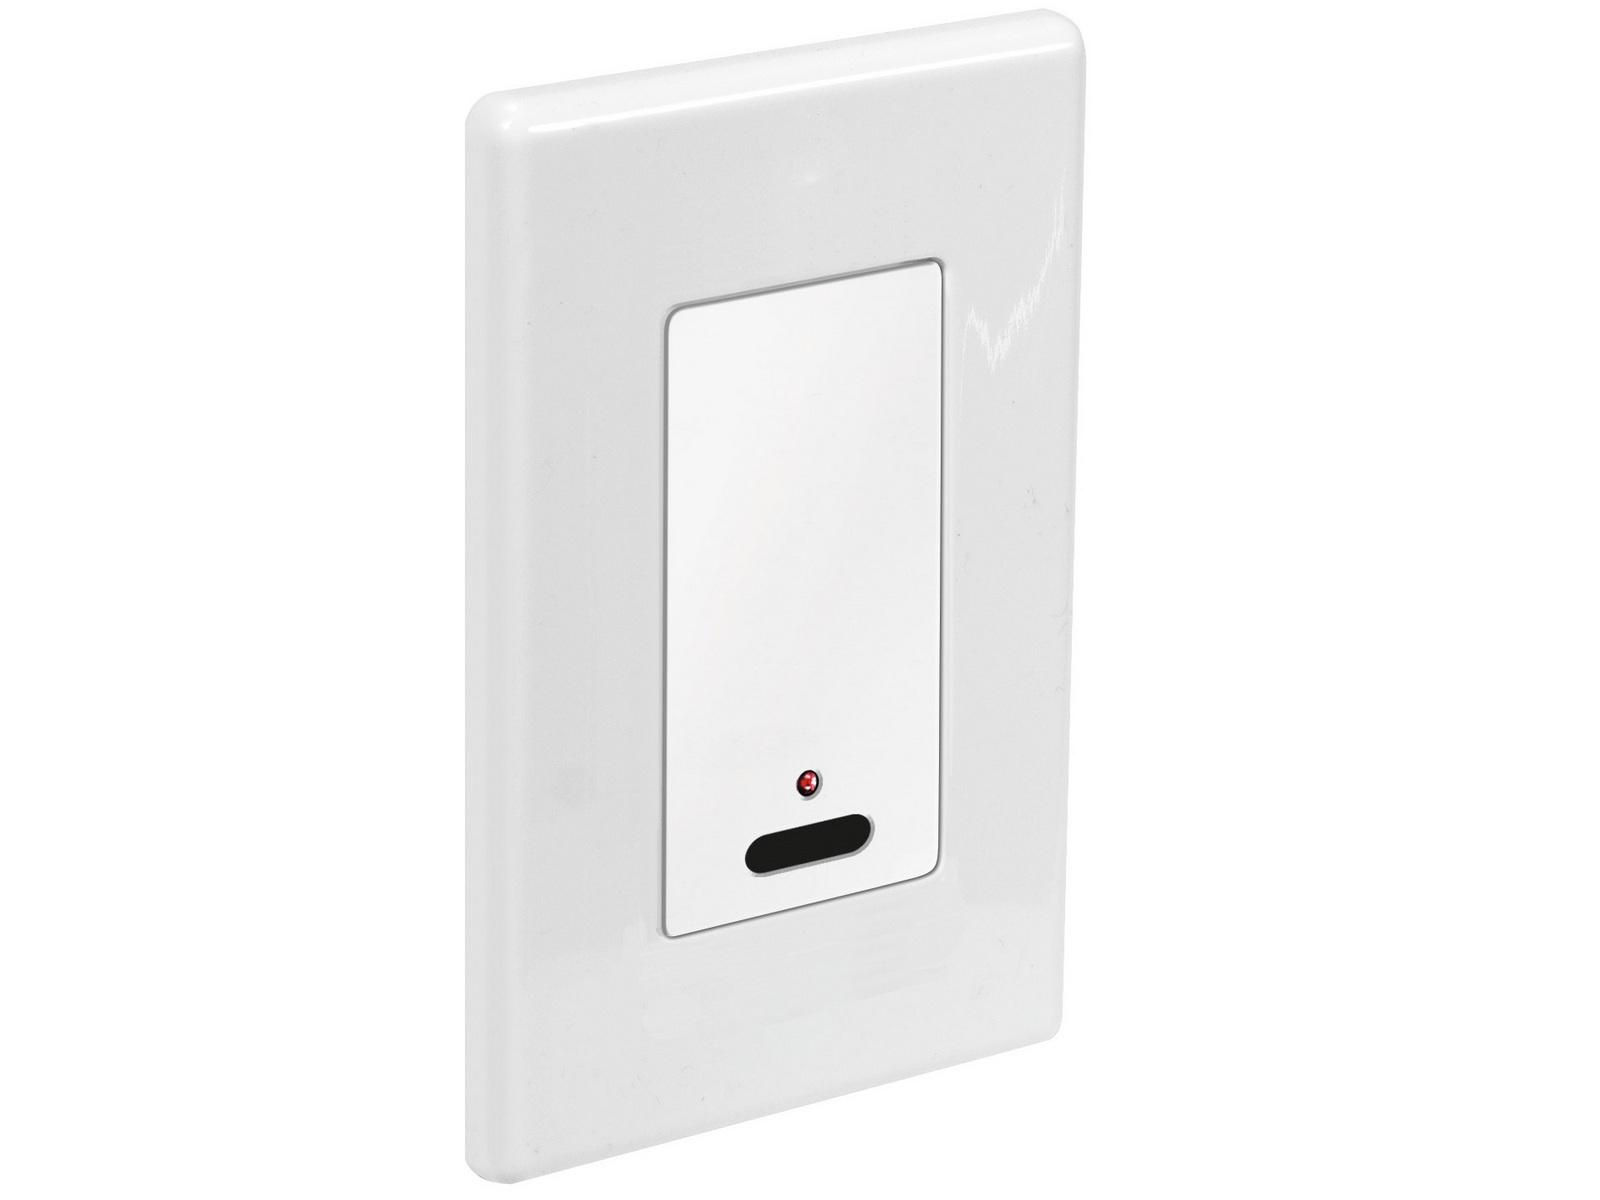 Key Digital KD-IRP3099W IR Wall Plate Extender (Receiver)